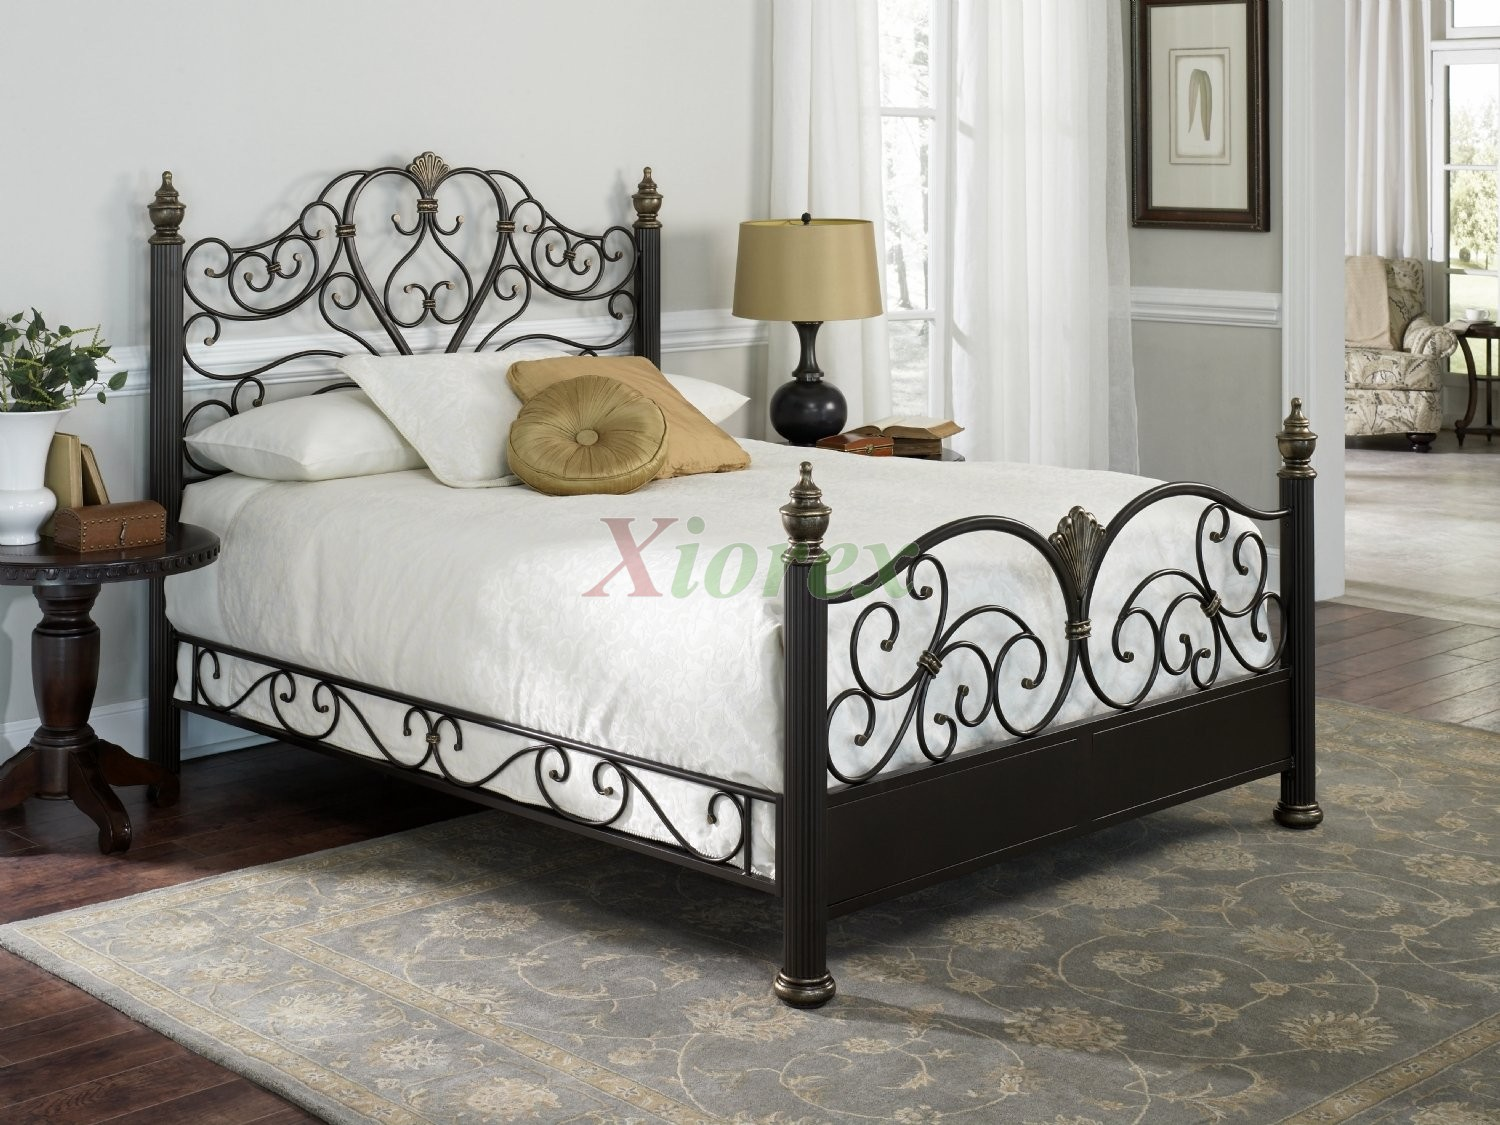 Elegance Bed Poster Bed In Gilded Truffle Finish By